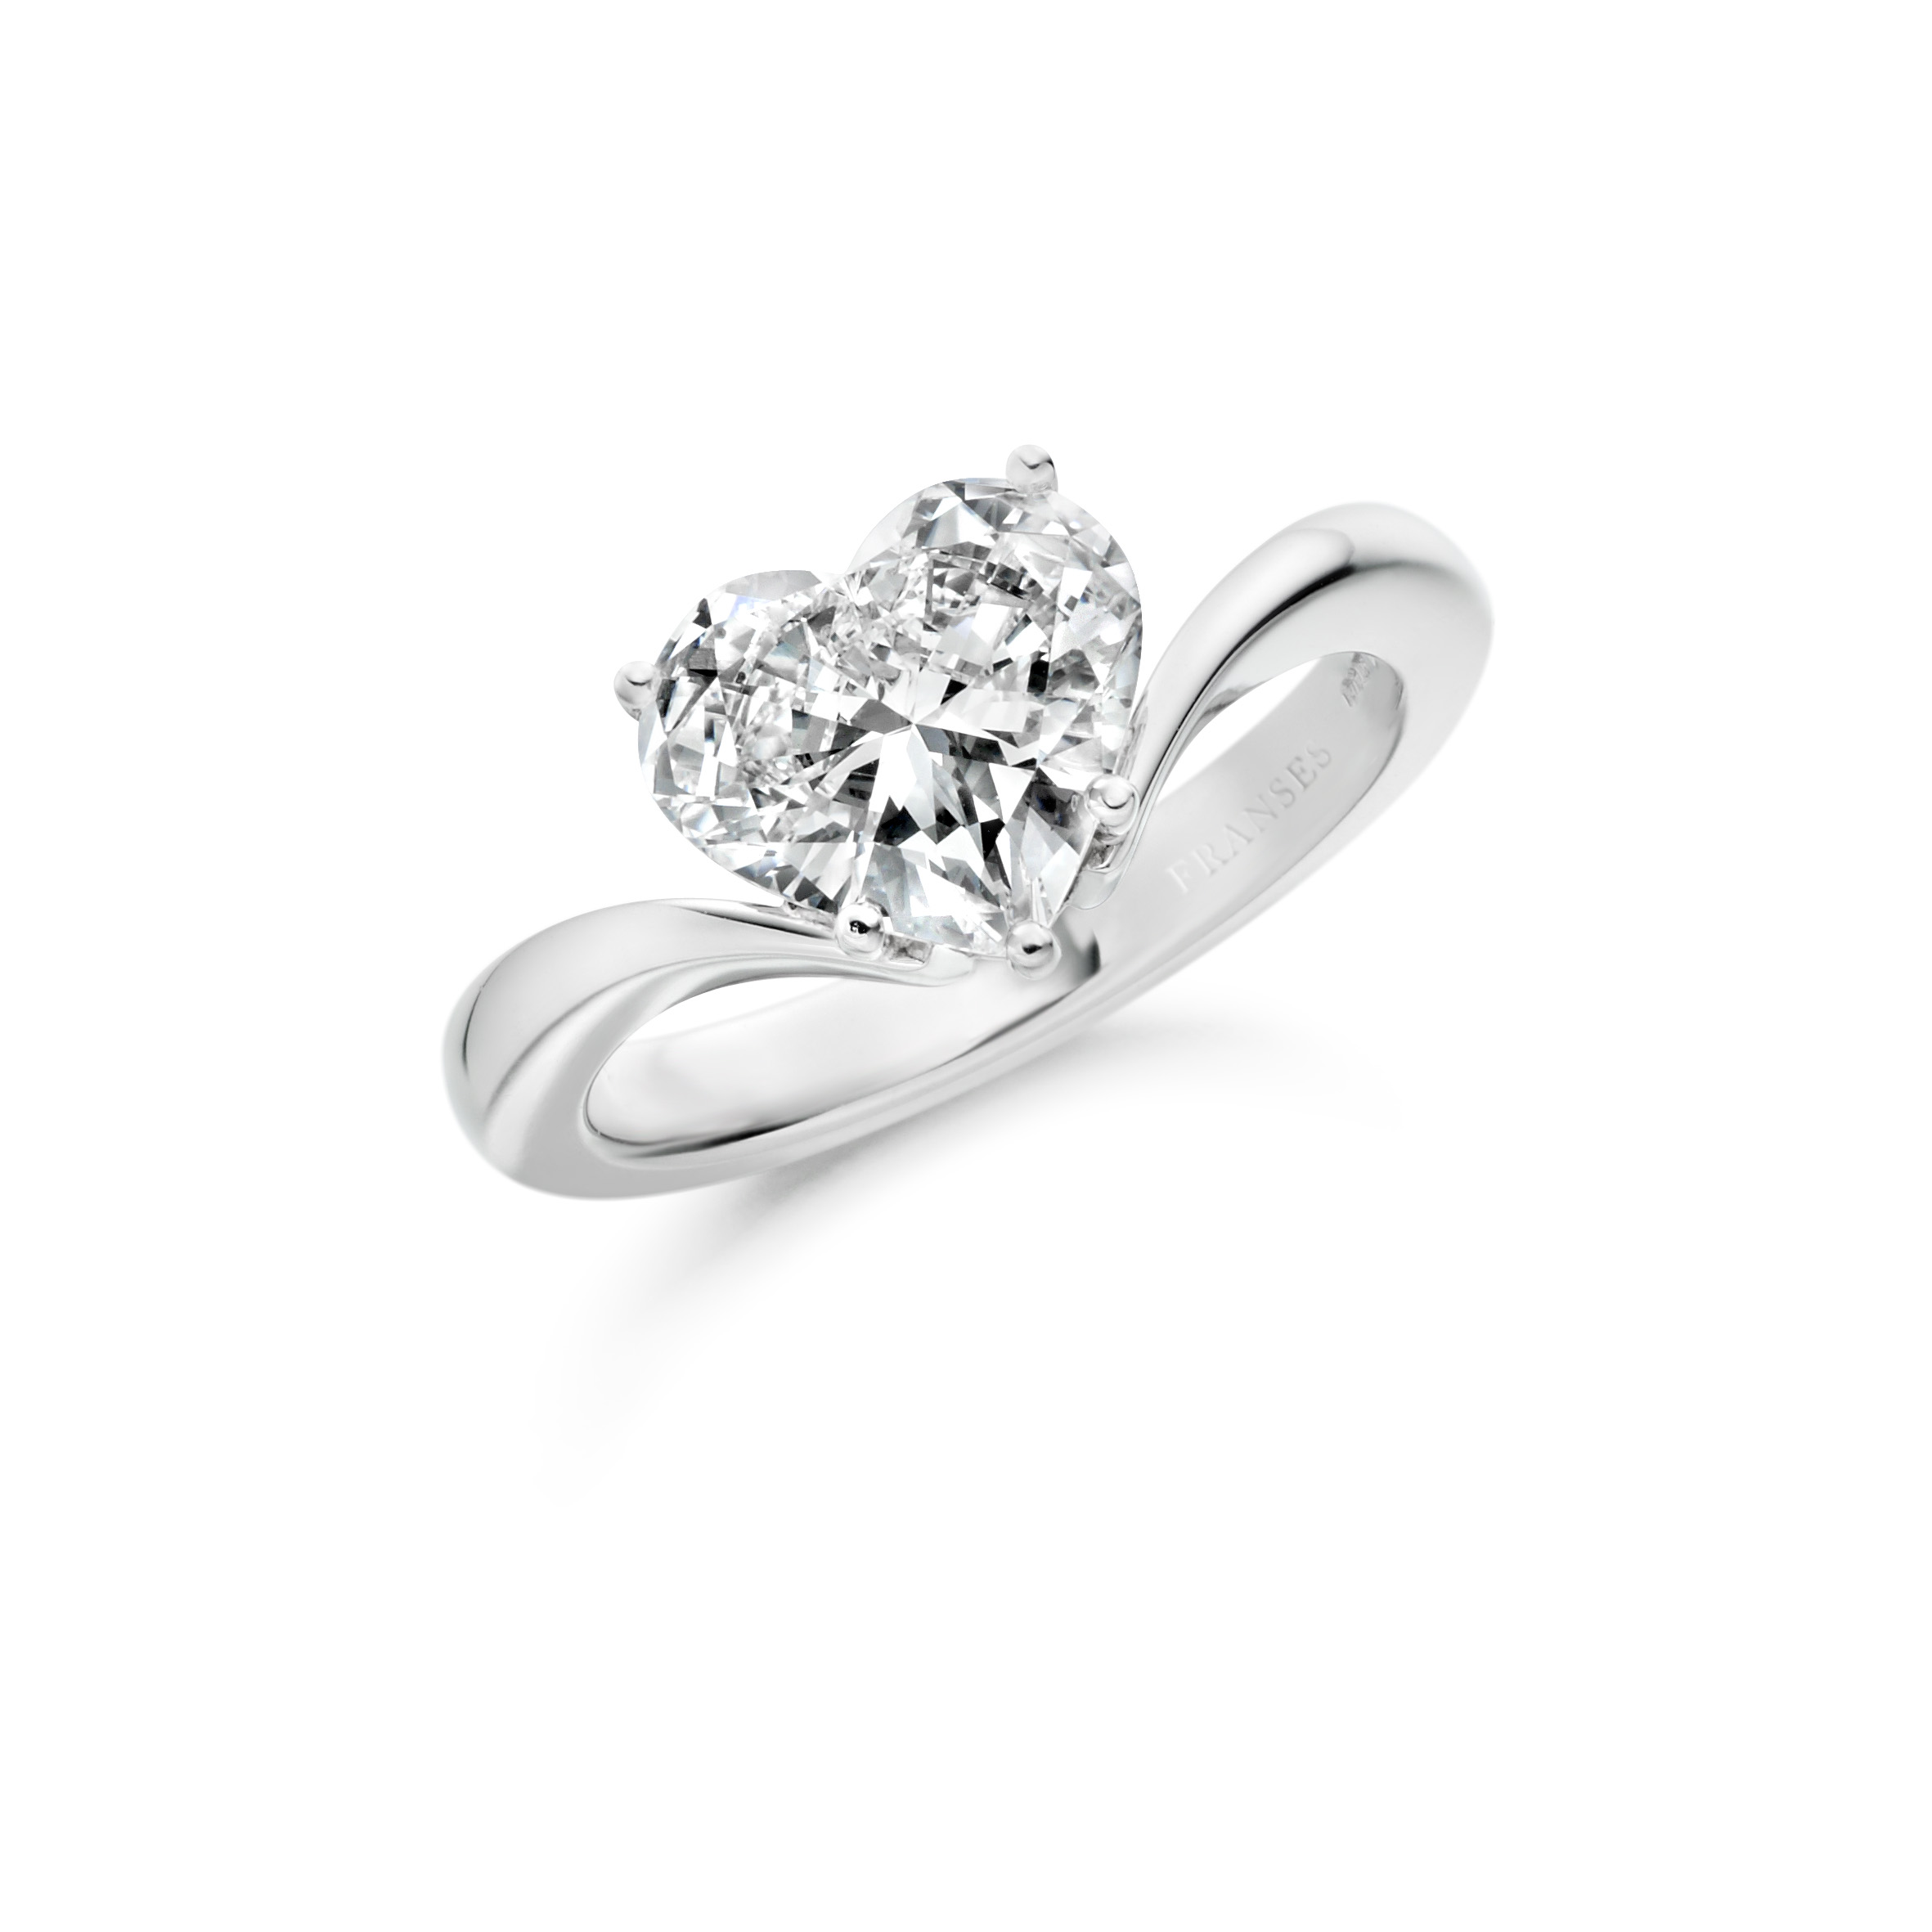 Heart-shaped diamond solitaire - heart